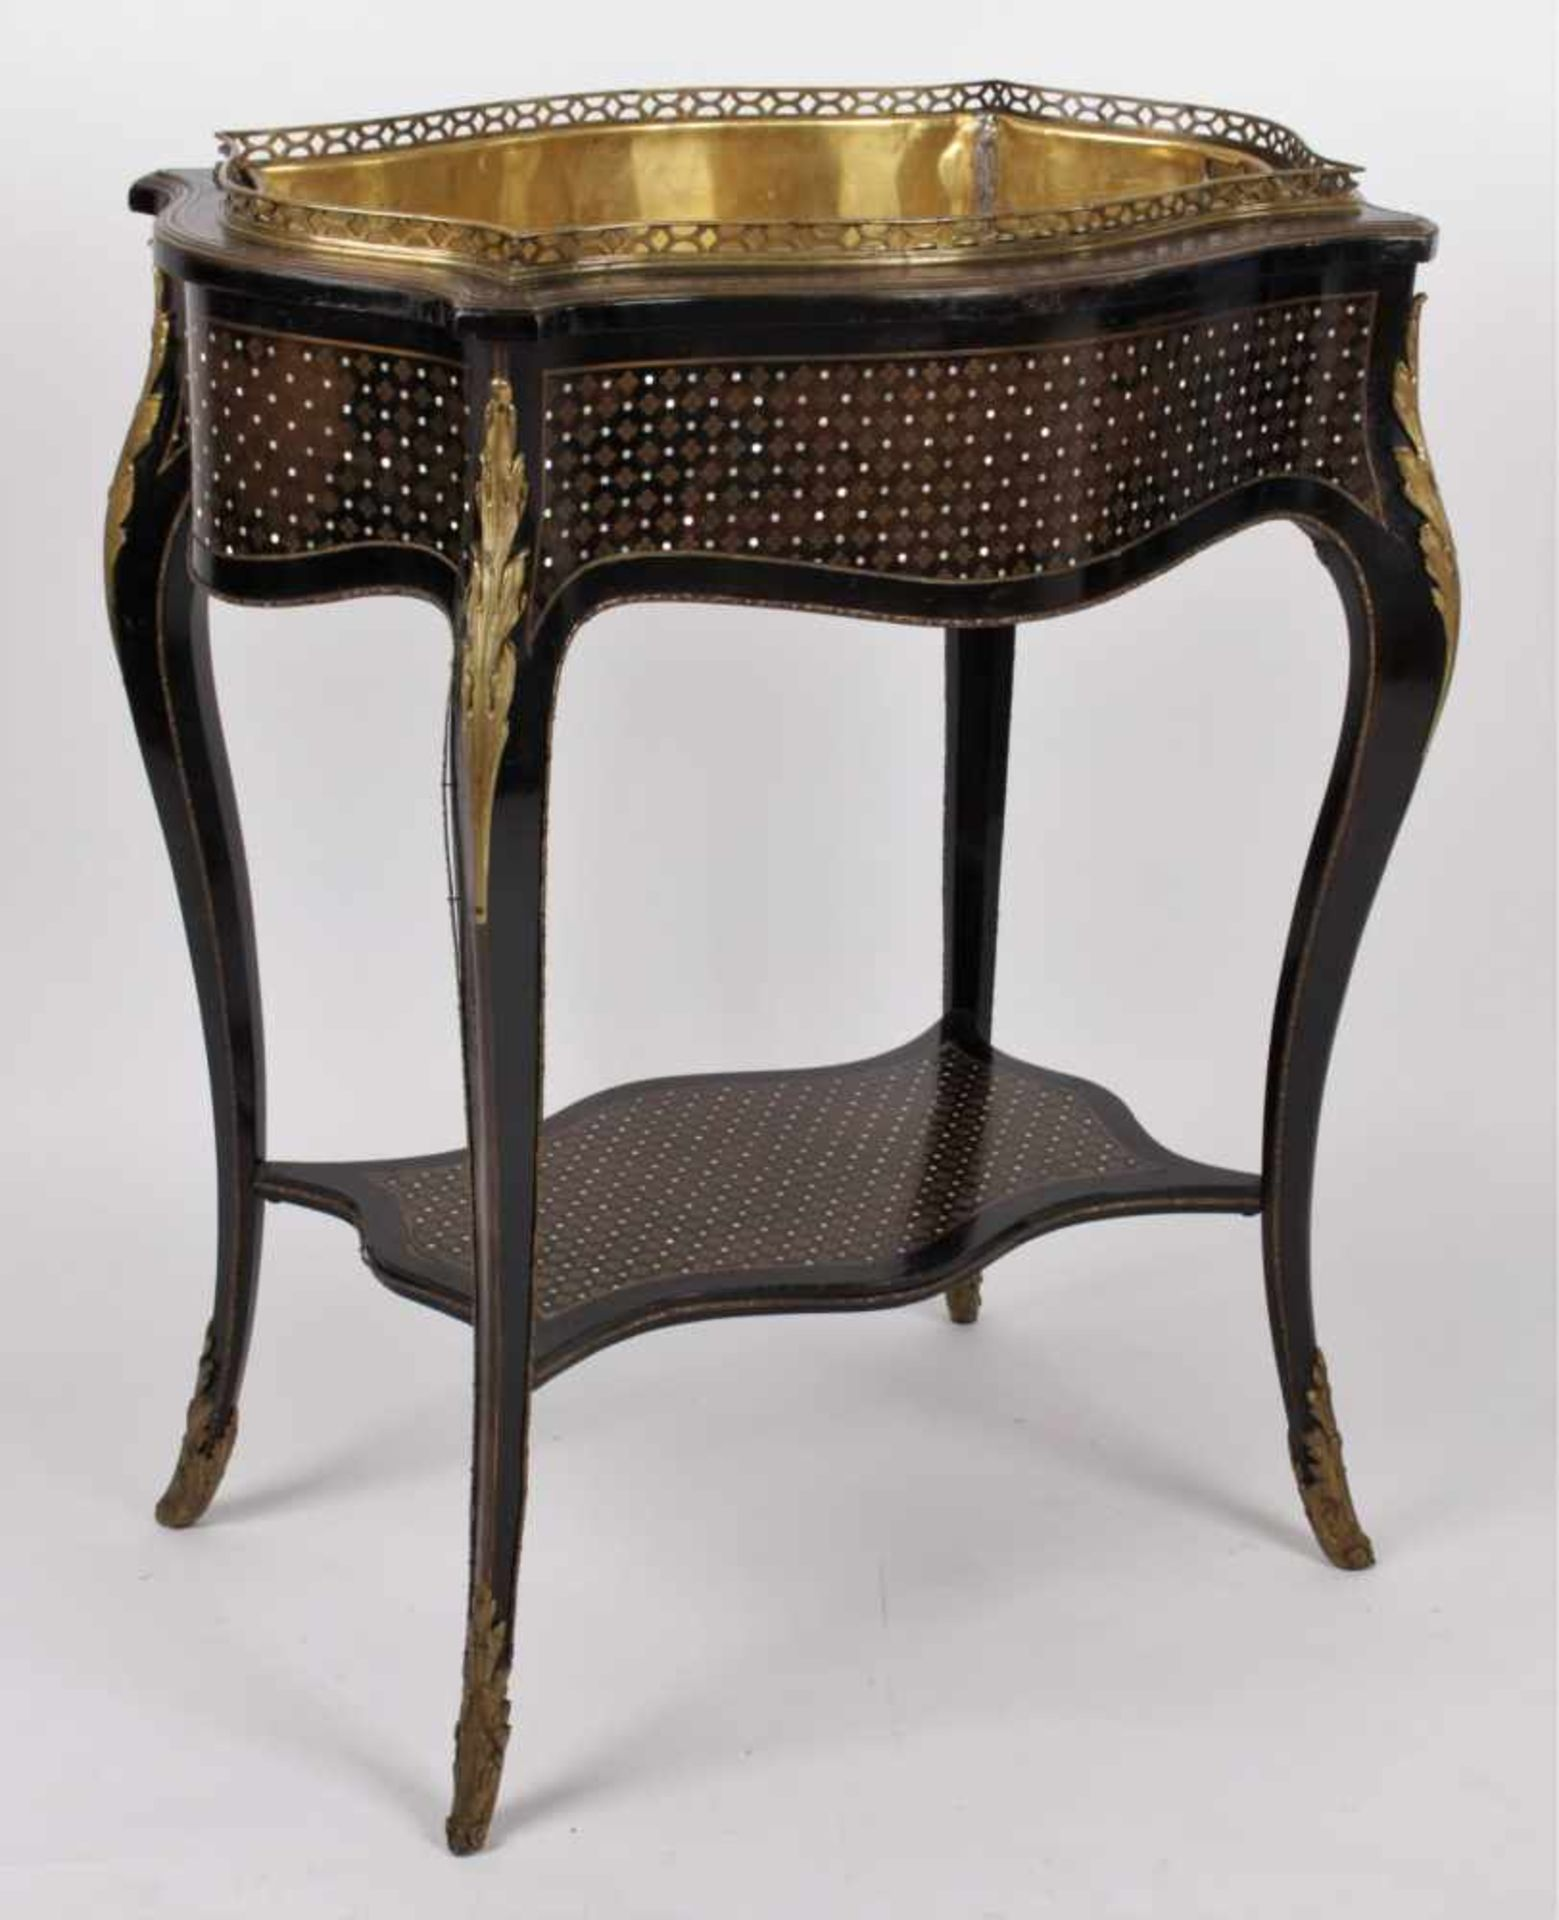 Los 39 - French flower table – marked Tahan France, Paris, marked Tahan, 19th century, flower table with